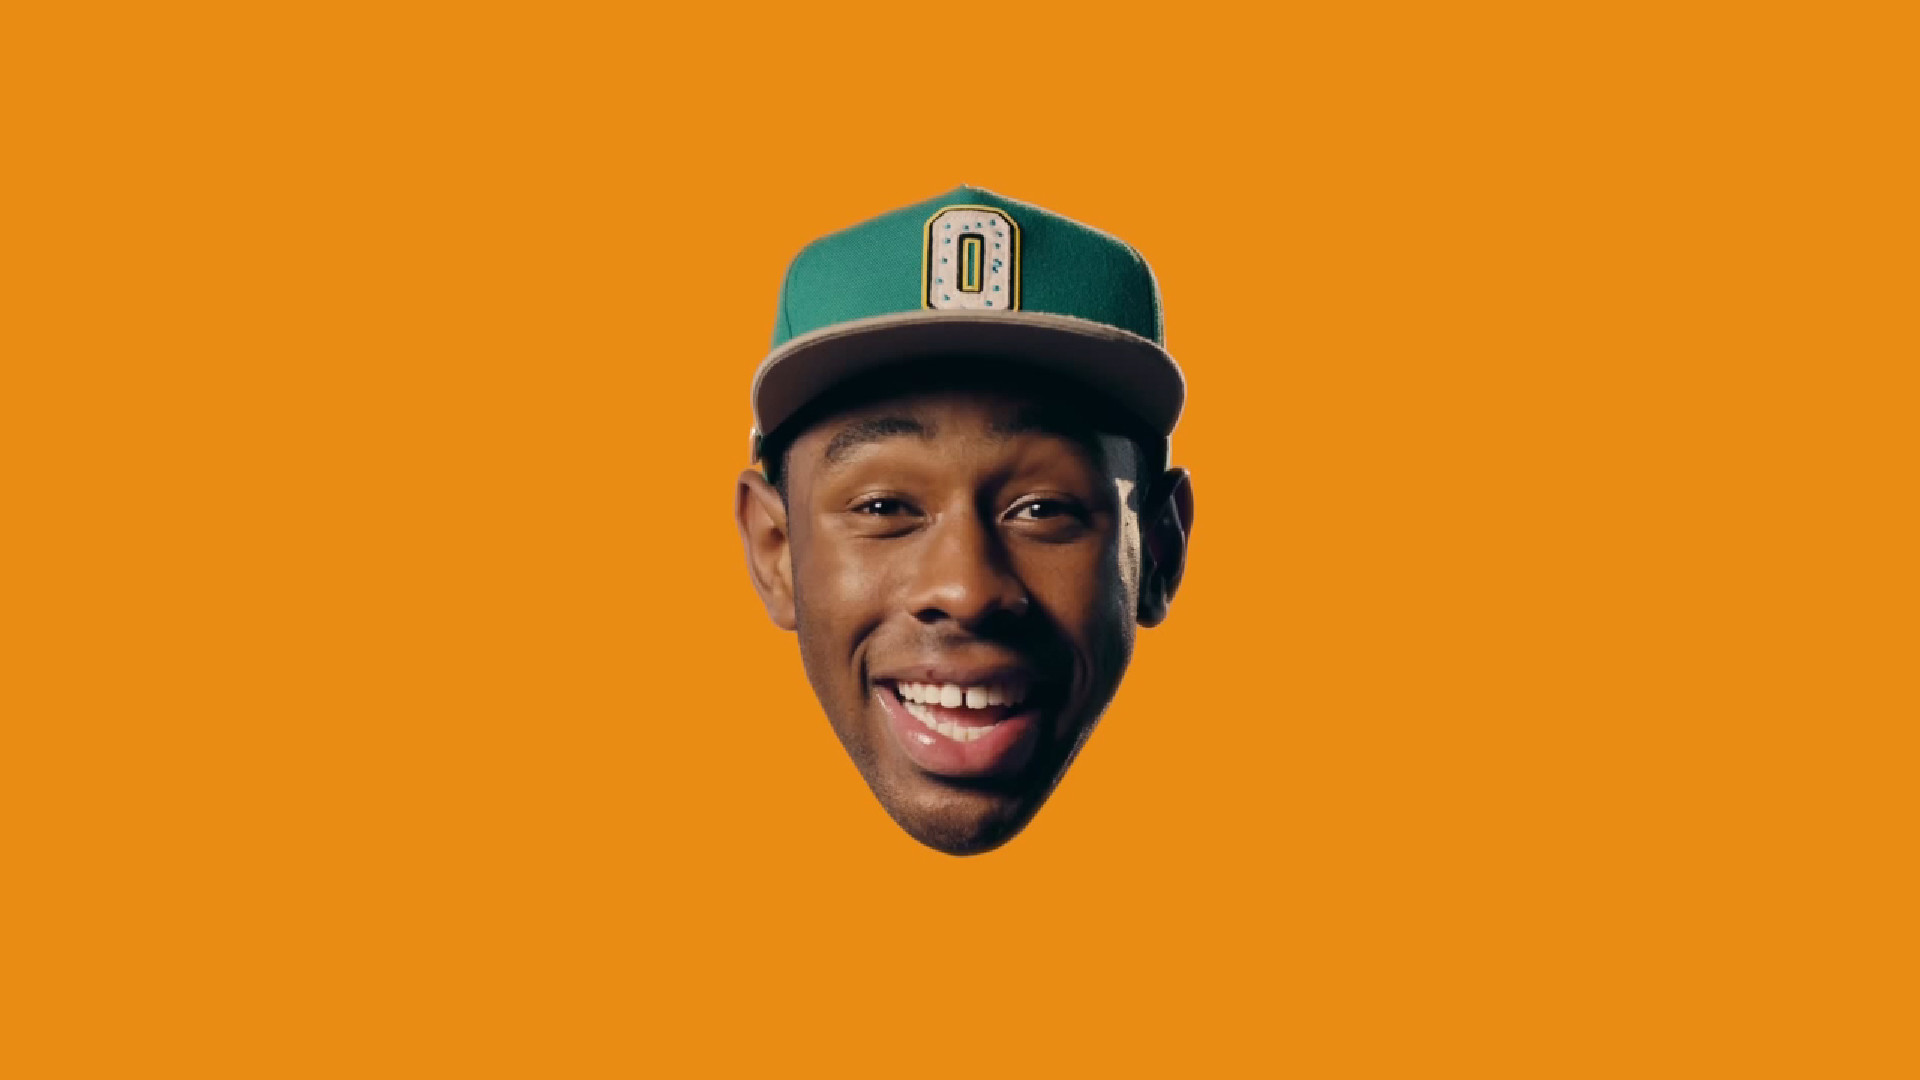 My last photo session for 2013 Tyler The Creator Donut Wallpaper